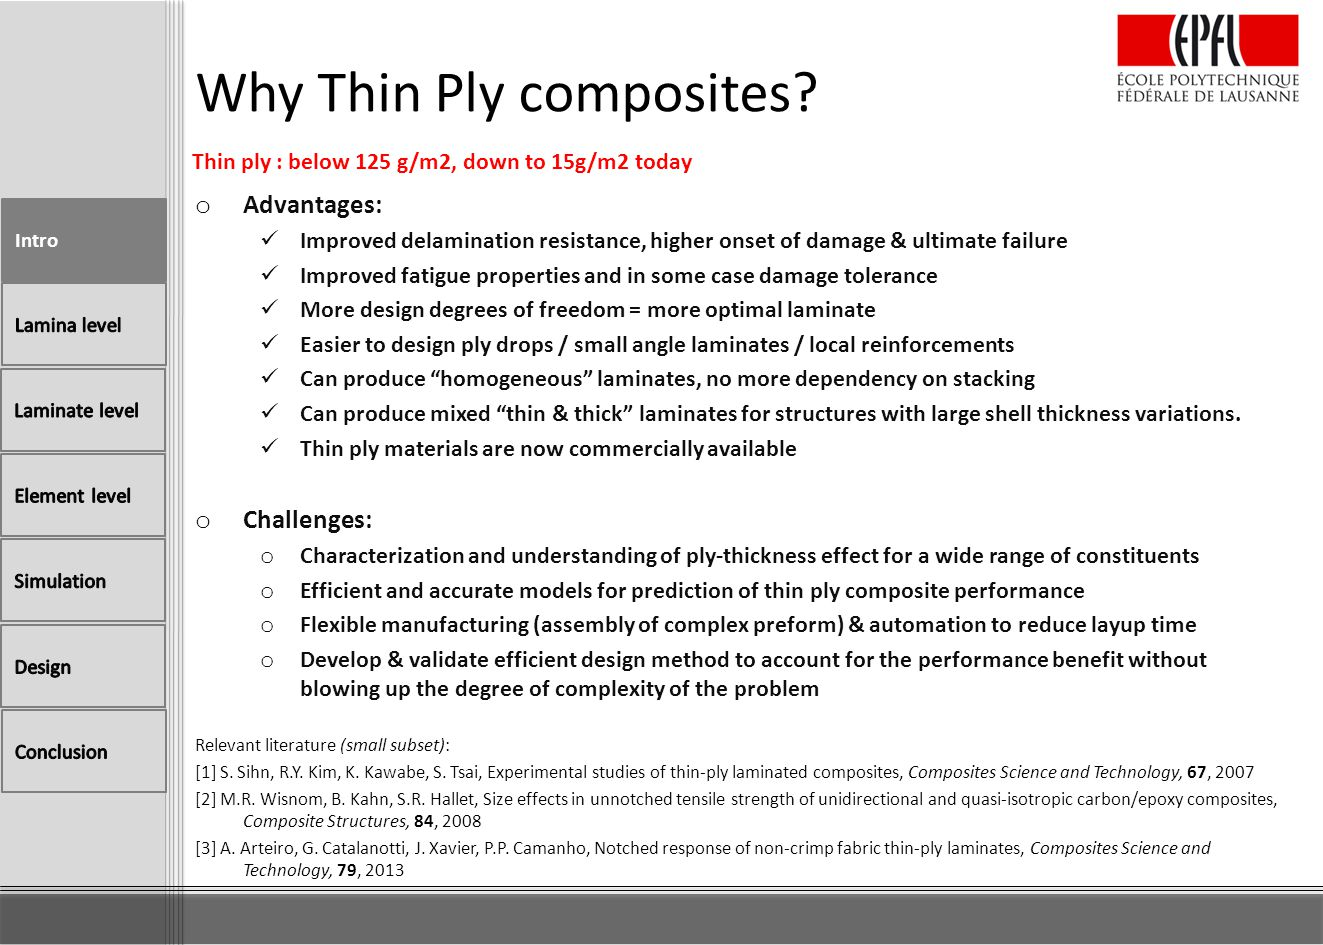 Why Thin Ply composites